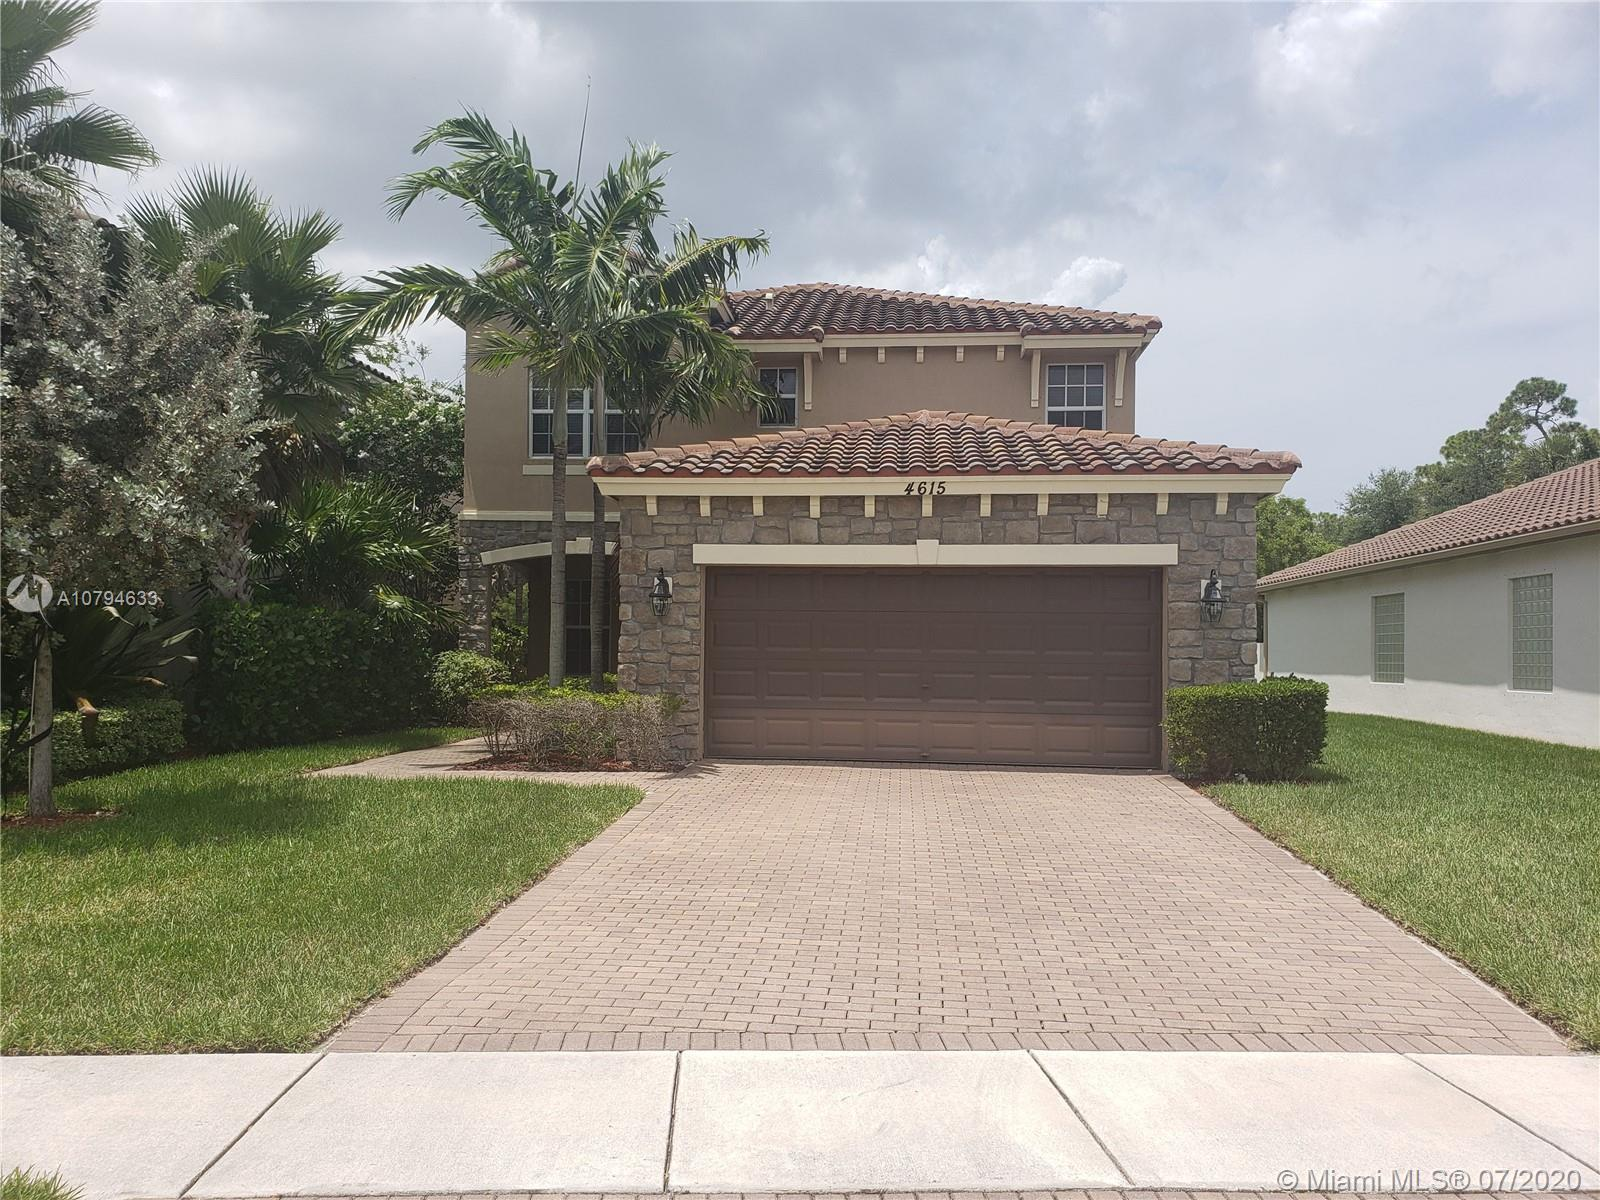 4615 Capital Dr, Lake Worth, FL 33463